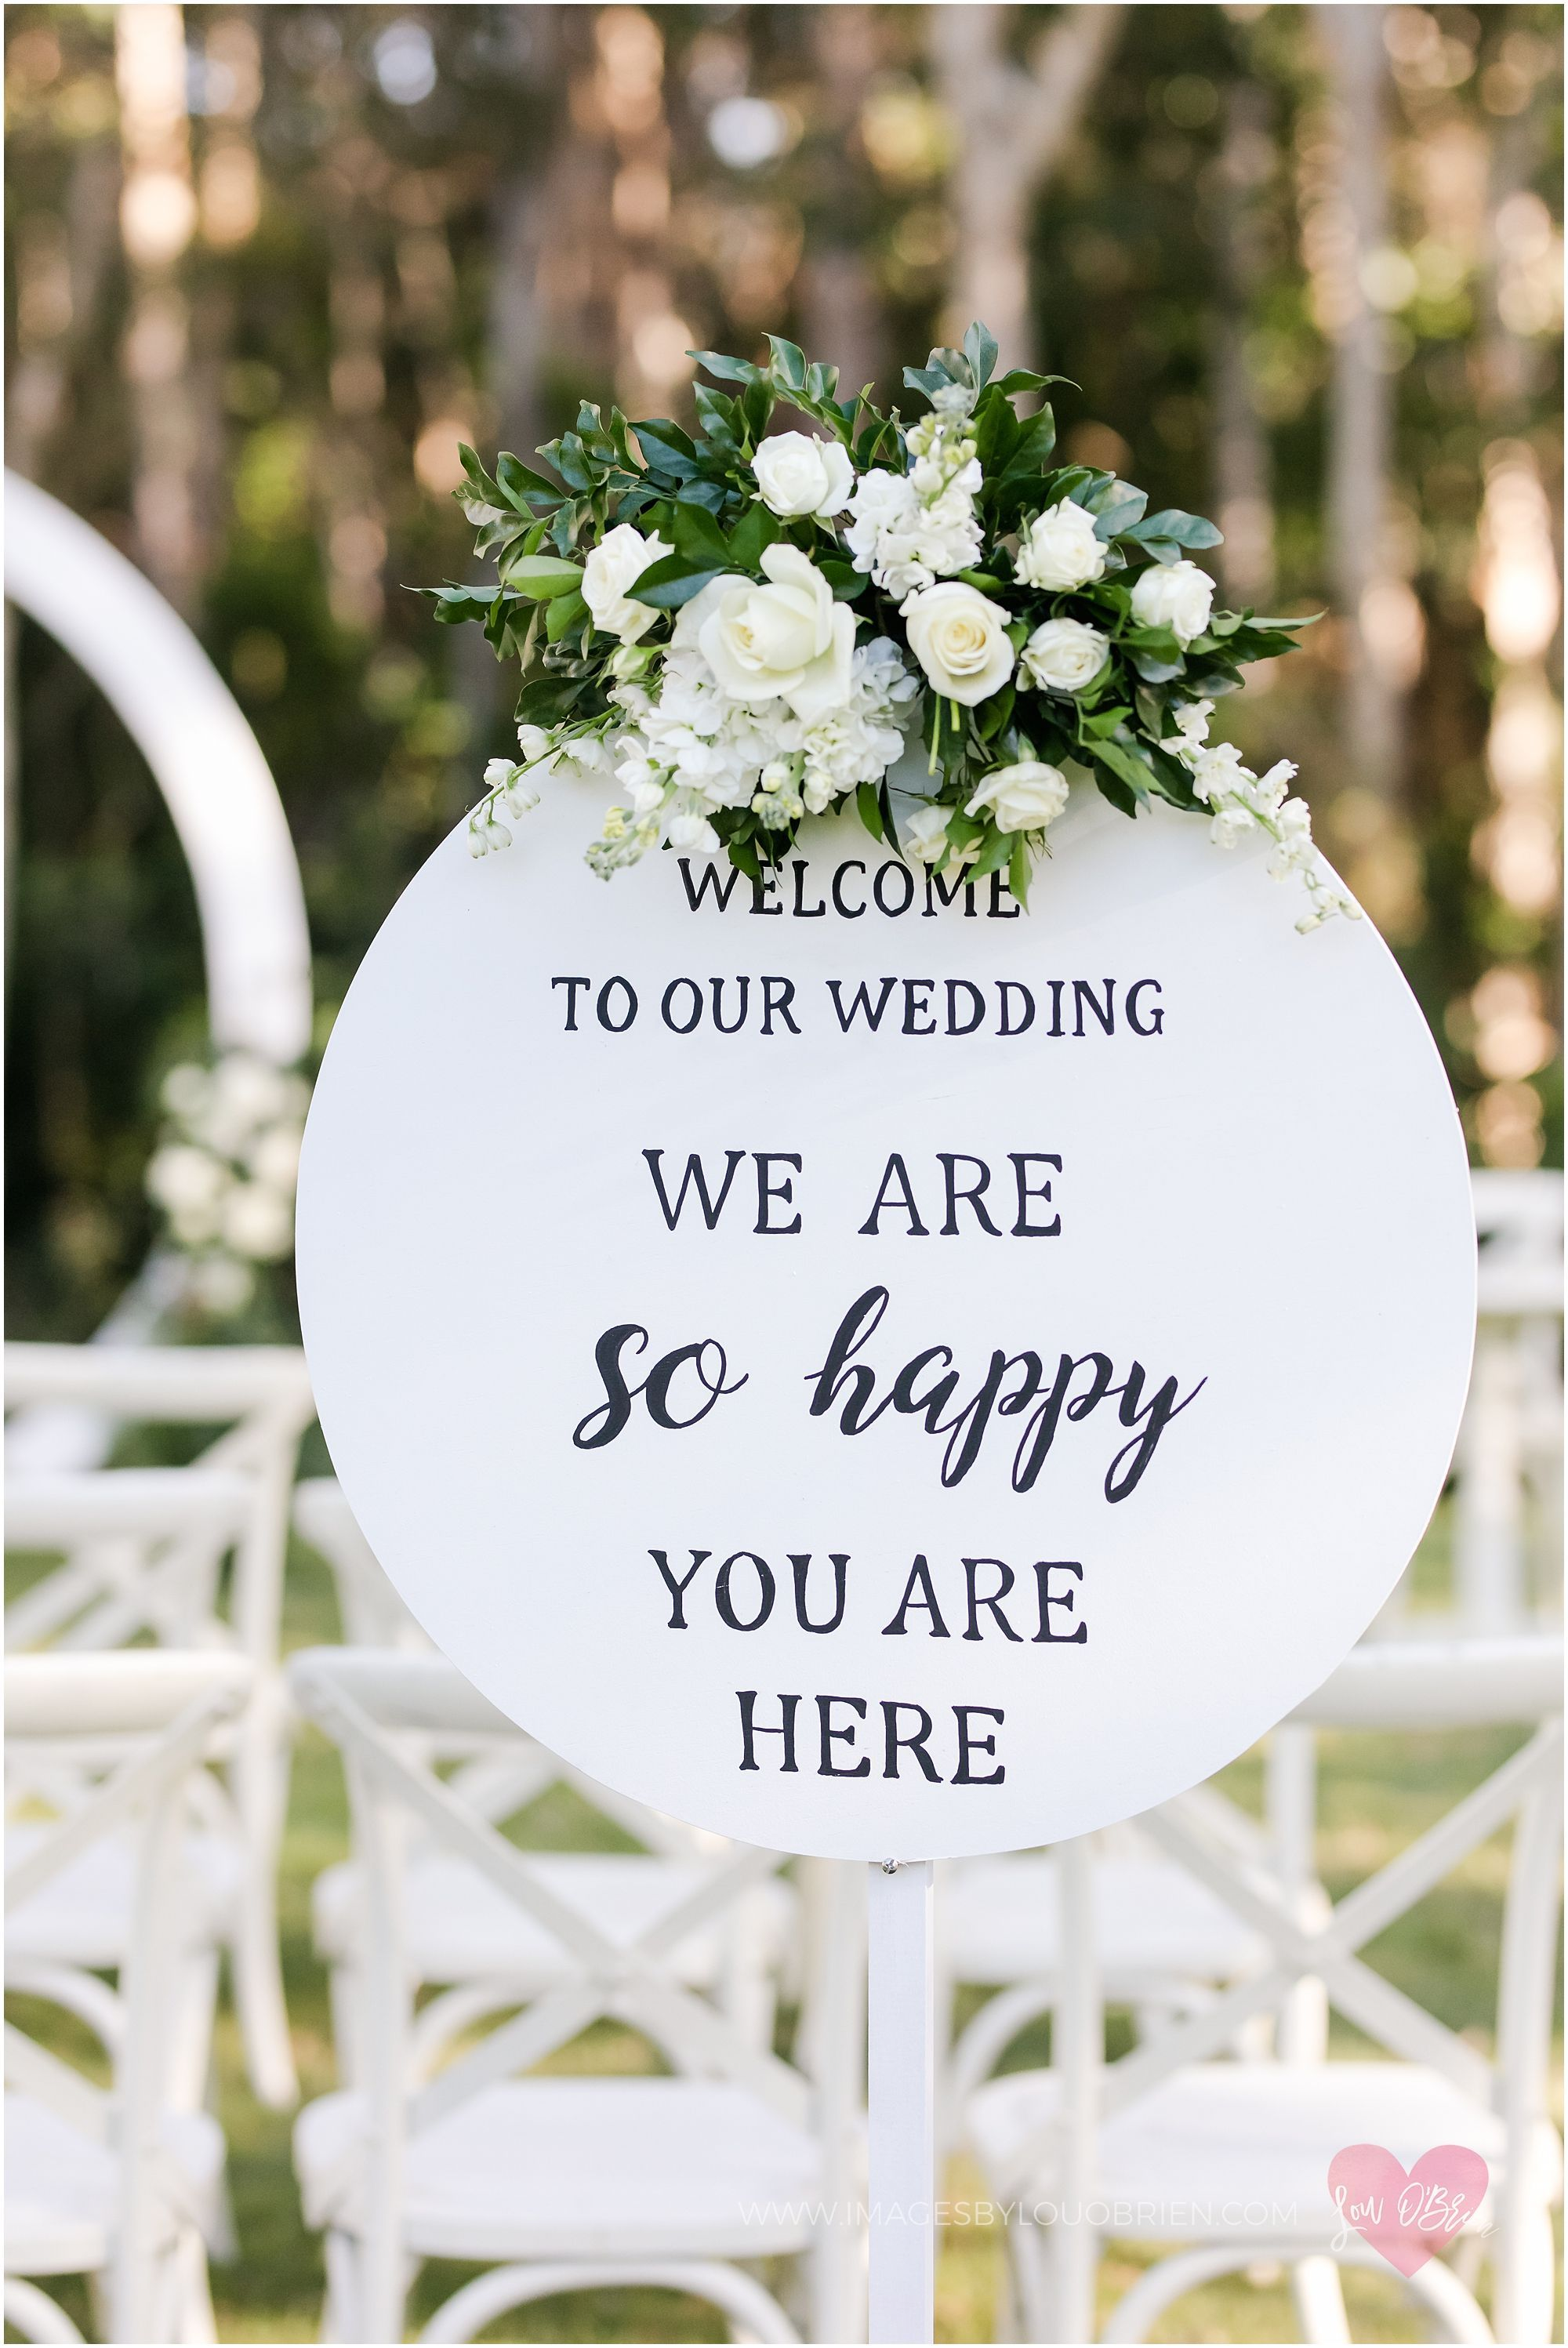 White round welcome sign wedding ceremony with white flowers white round welcome sign wedding ceremony with white flowers greenery mightylinksfo